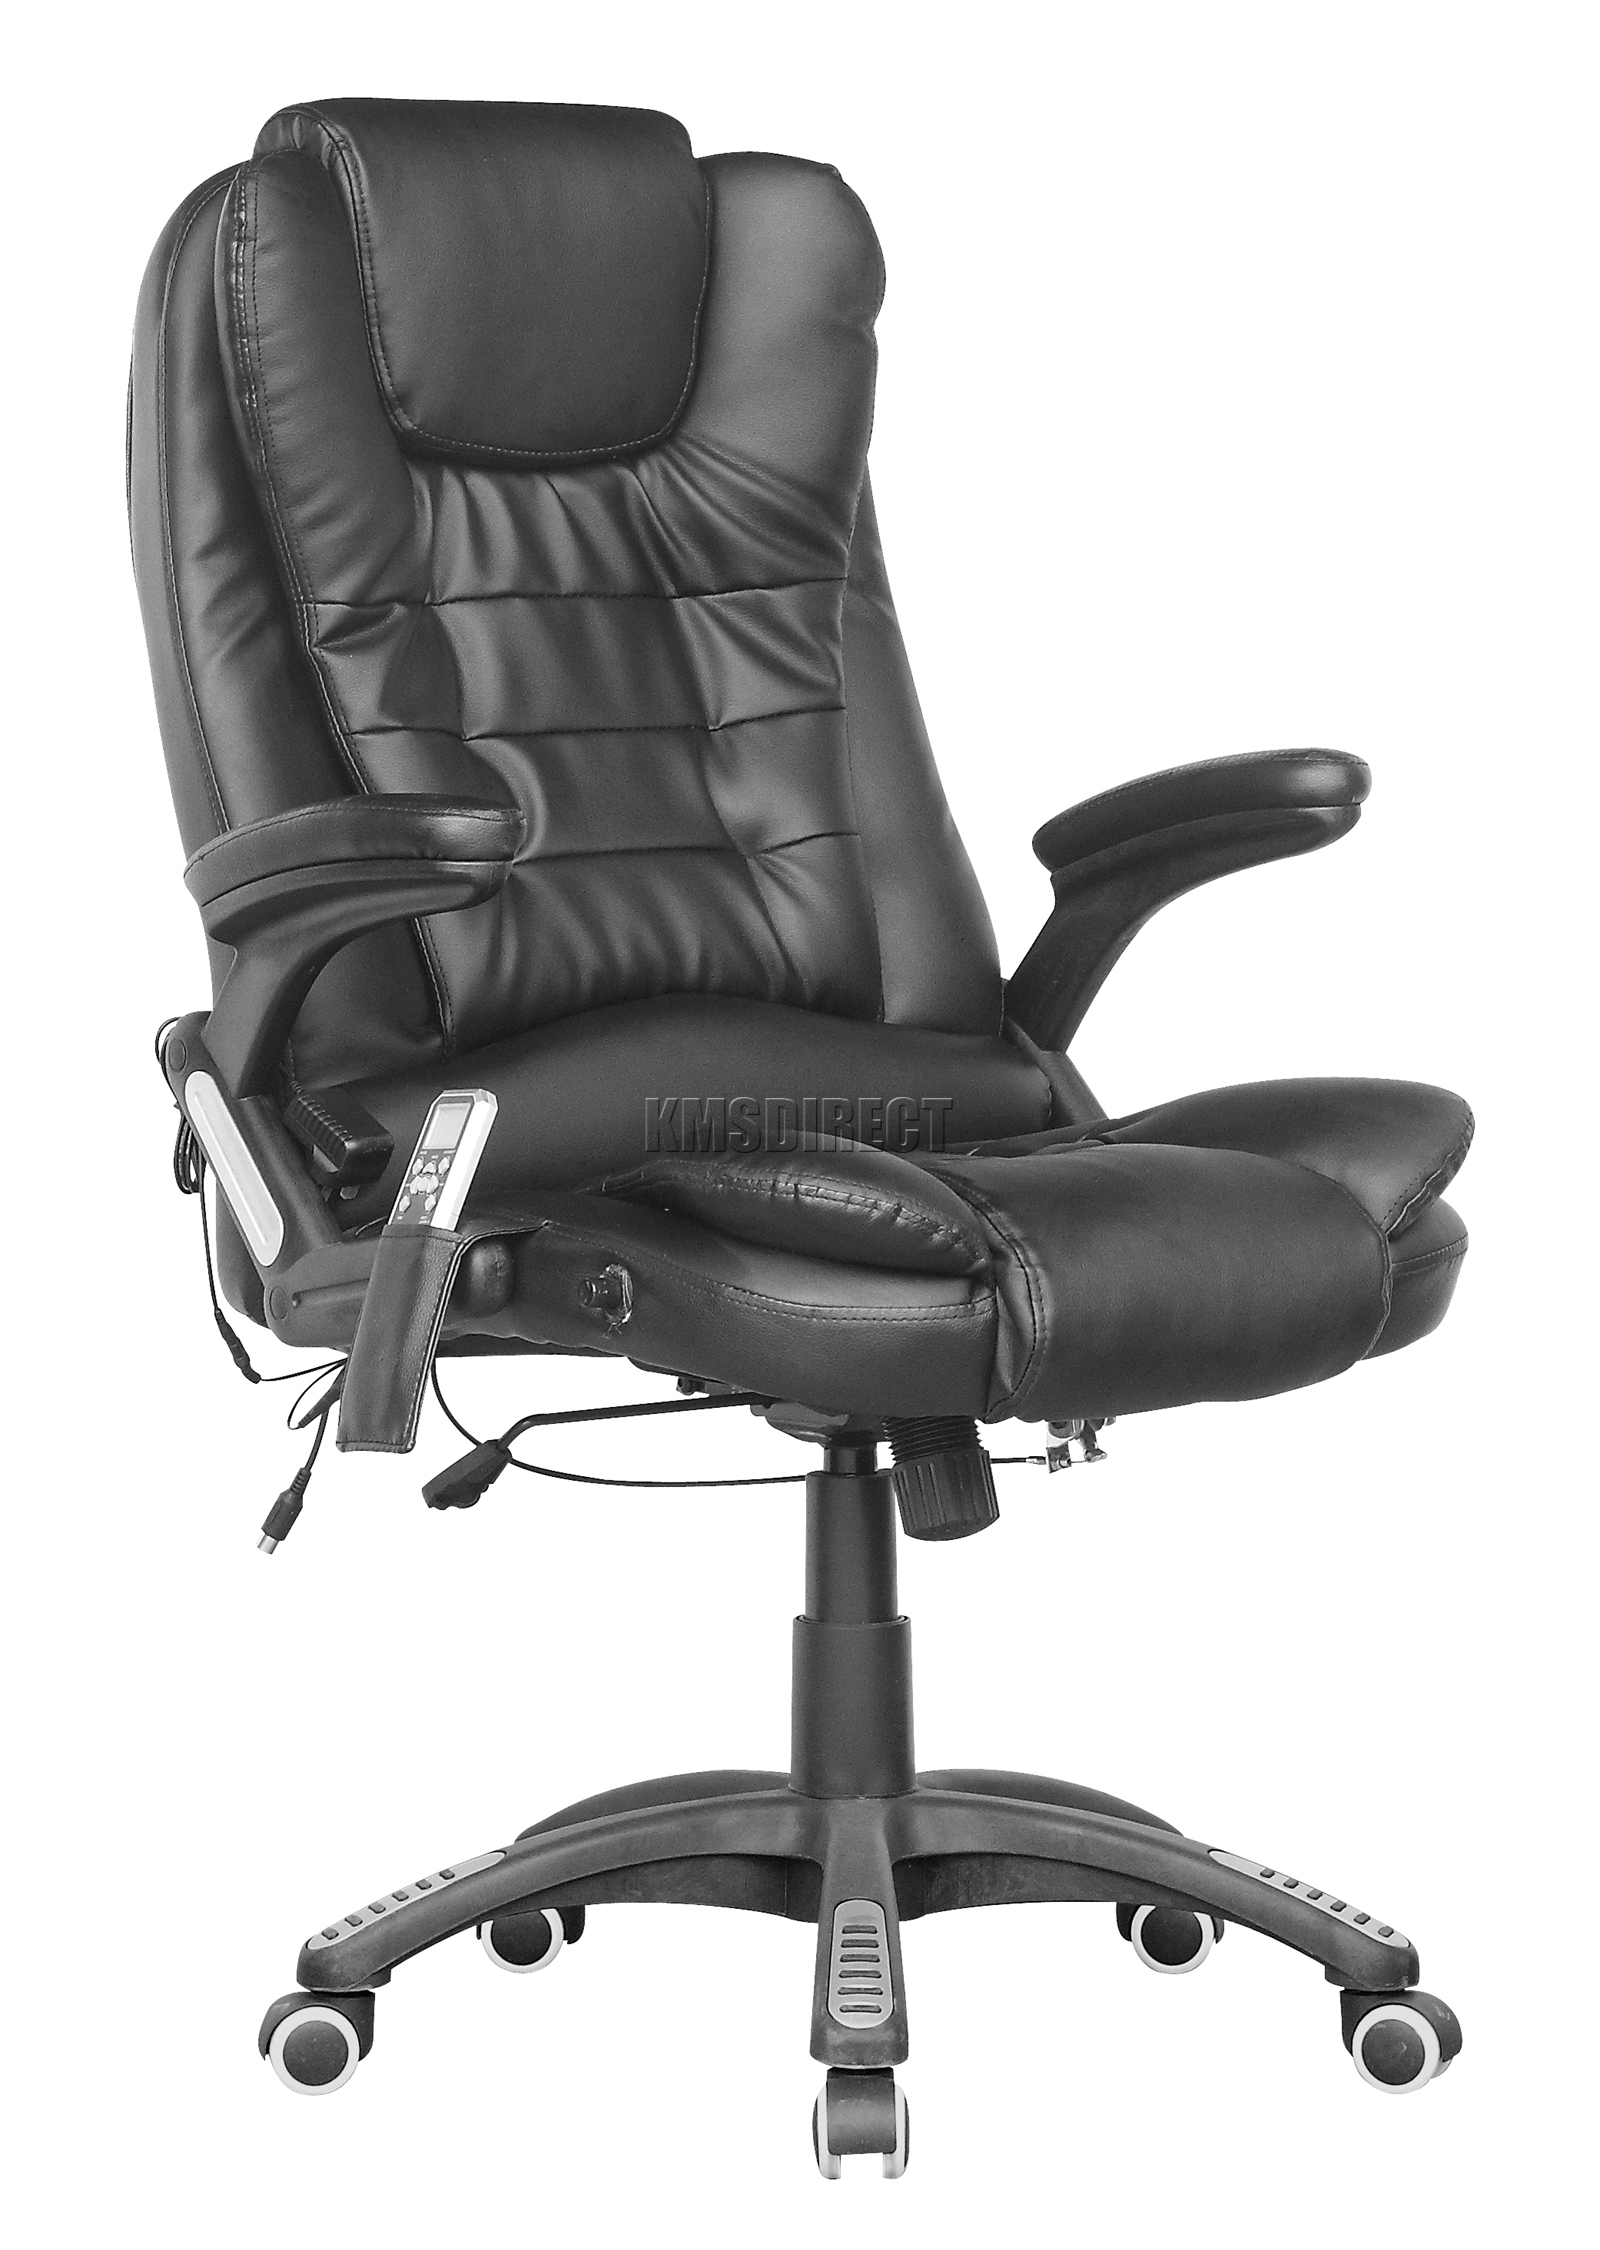 Luxury Office Chair Westwood 6 Point Massage Office Computer Chair Luxury